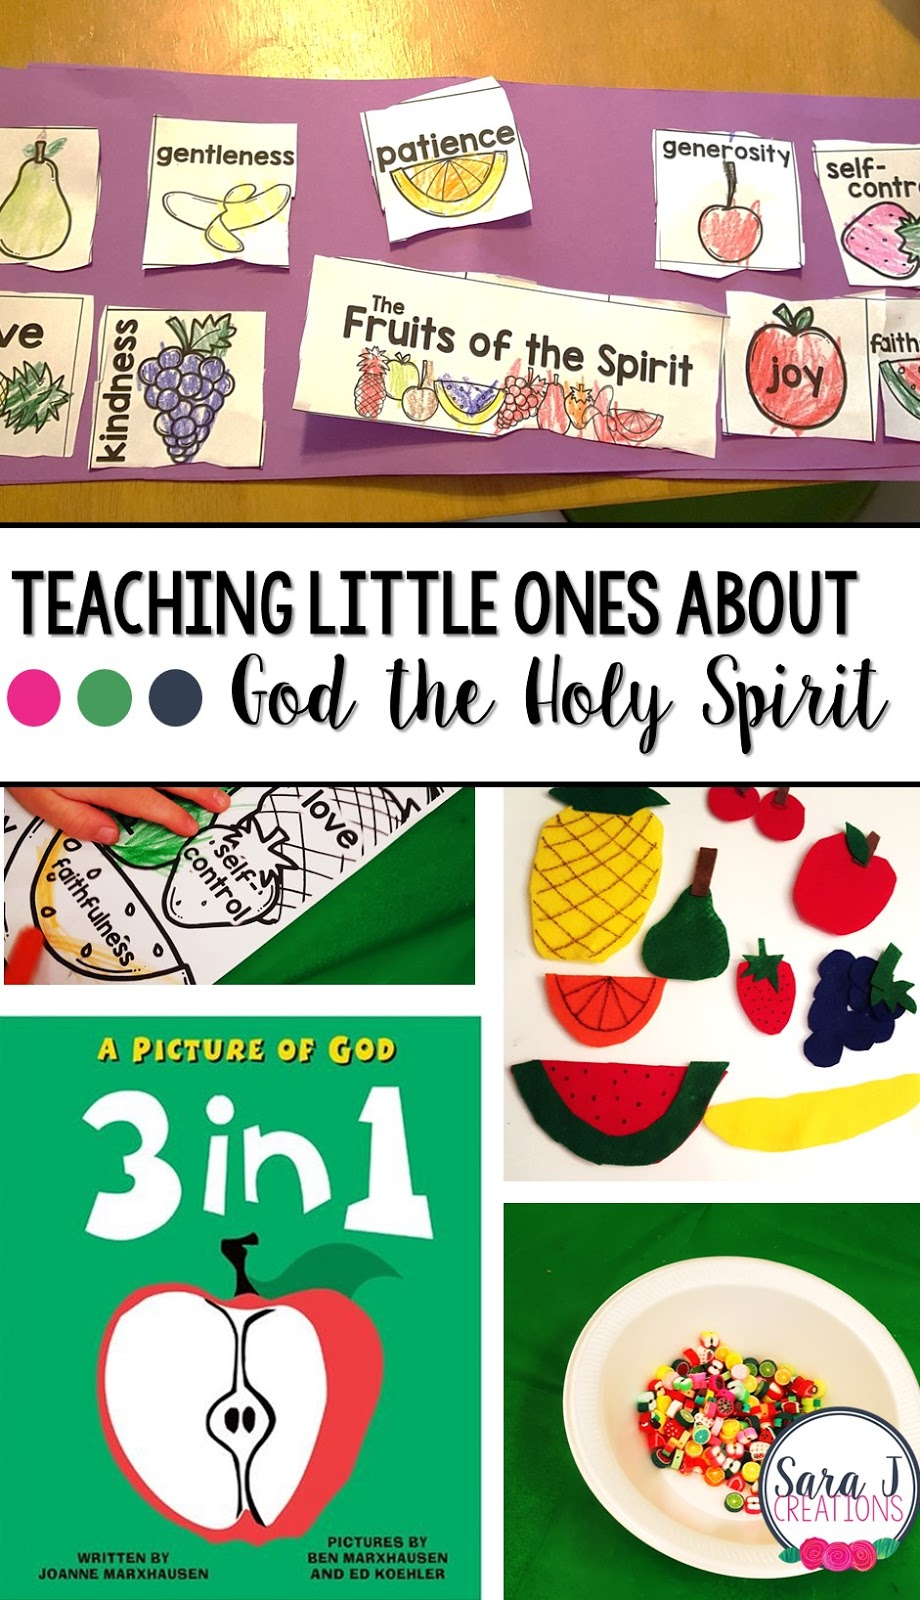 Teaching little ones about God the Holy Spirit through crafts, sensory activities, puzzles, fine motor practice, stories and more.  Perfect for Sunday school or Vacation Bible School.